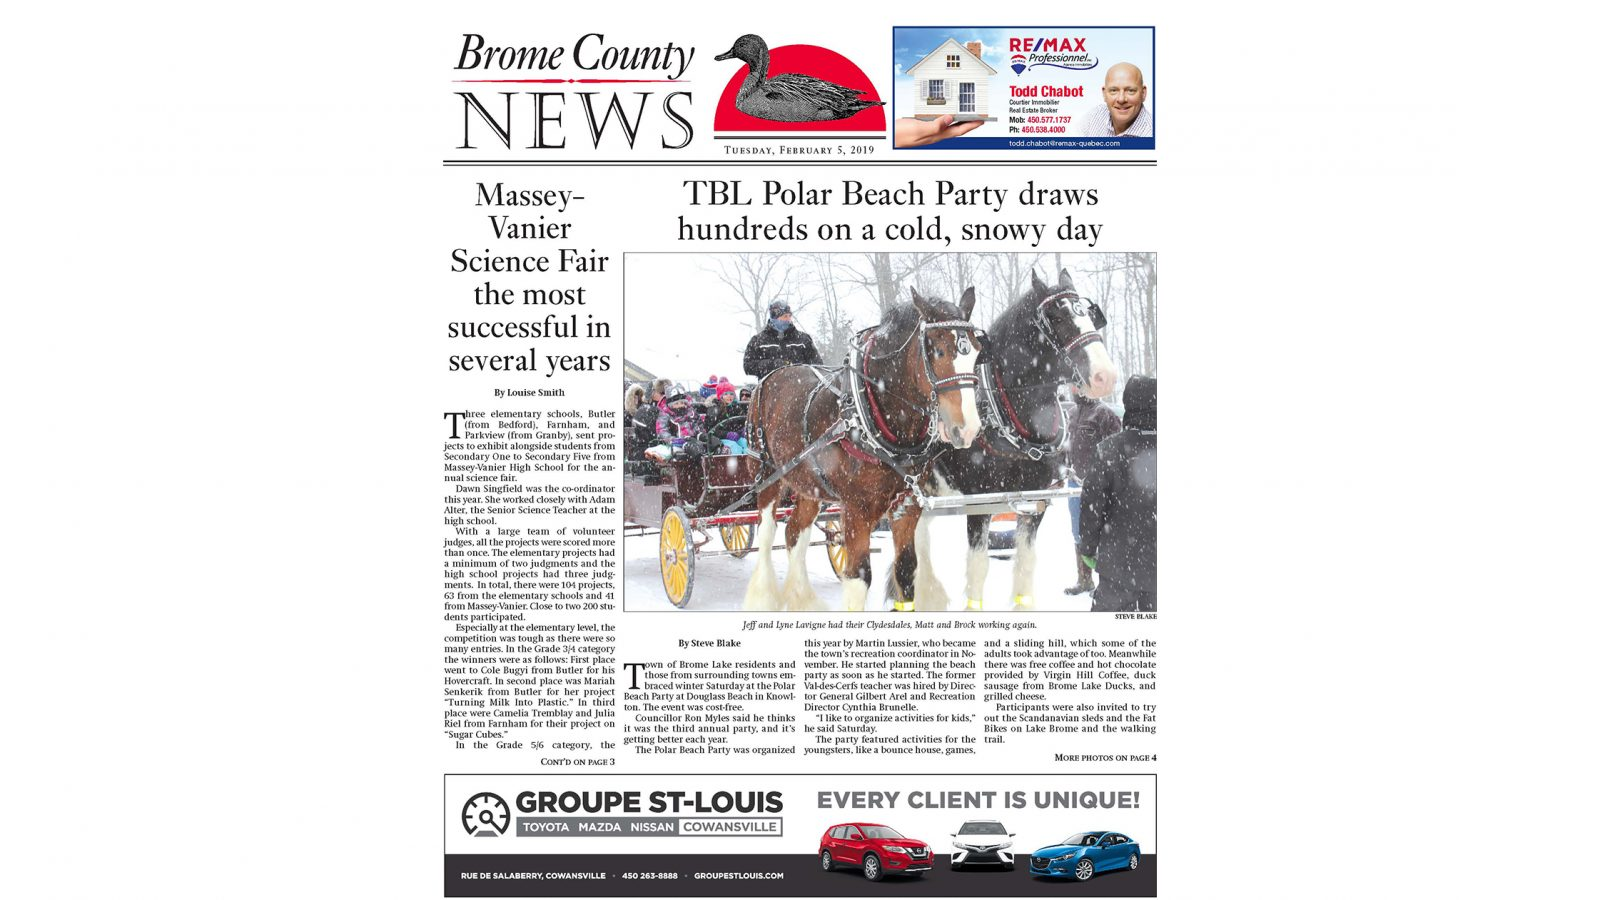 Brome County News – Tuesday, Feb. 5 edition